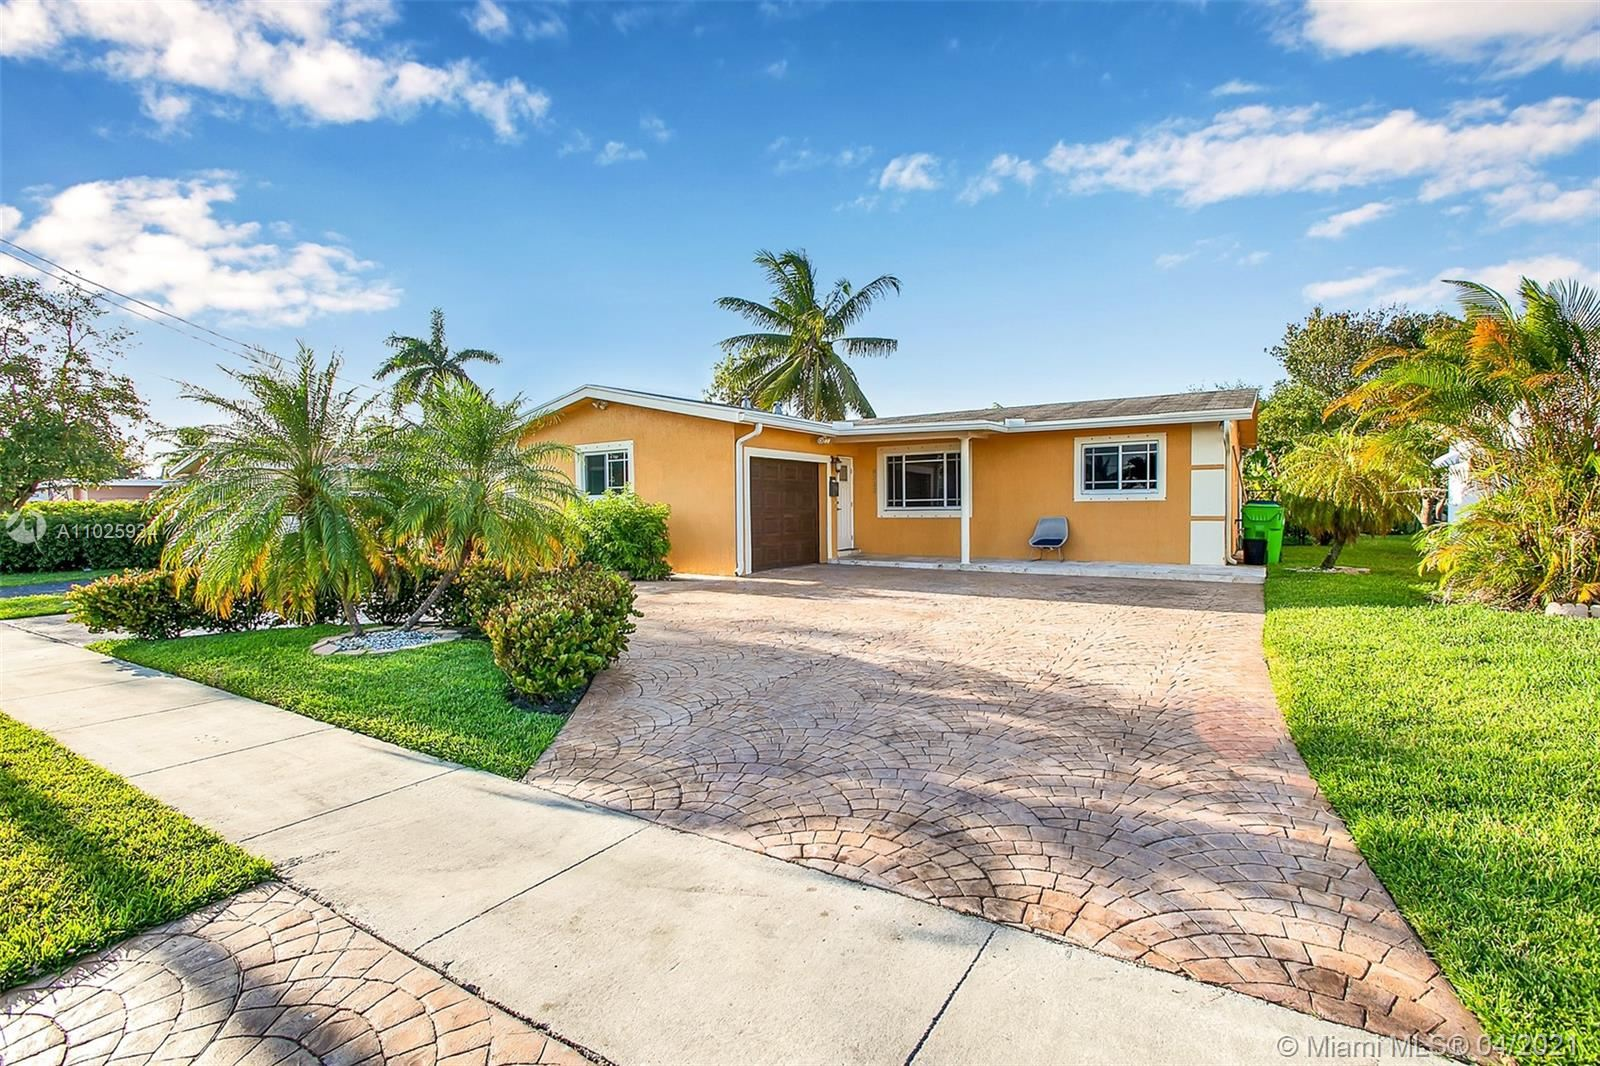 8353 NW 26th Pl, Sunrise, FL 33322 - #: A11025934